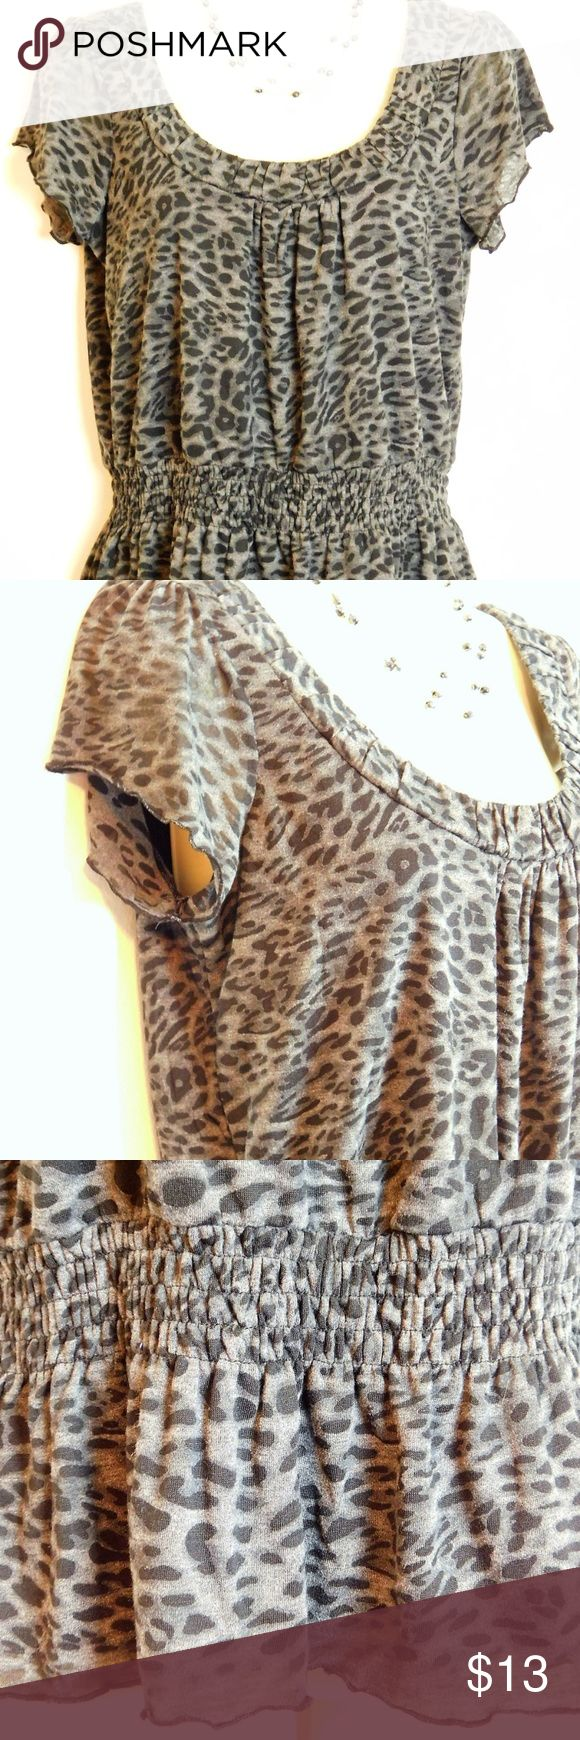 """Animal Print Flutter Sleeve Peplum Knit Top Size M """"JH Collectibles"""" leopard animal print blouse looks great with skinny jeans, pencil skirt with ankle boots EUC excellent pre-owned condition, no visible flaws. Women's size M(8/10) reg Color:  Black Gray Length 22"""", Bust 18"""" across front  Pullover with ruched scoop neckline Short flutter sleeve Allover animal print Smocked elasticized waist with peplum hem Stretch knit construction Fully lined  Fabric & Care 73% polyester, 27% rayon Hand…"""